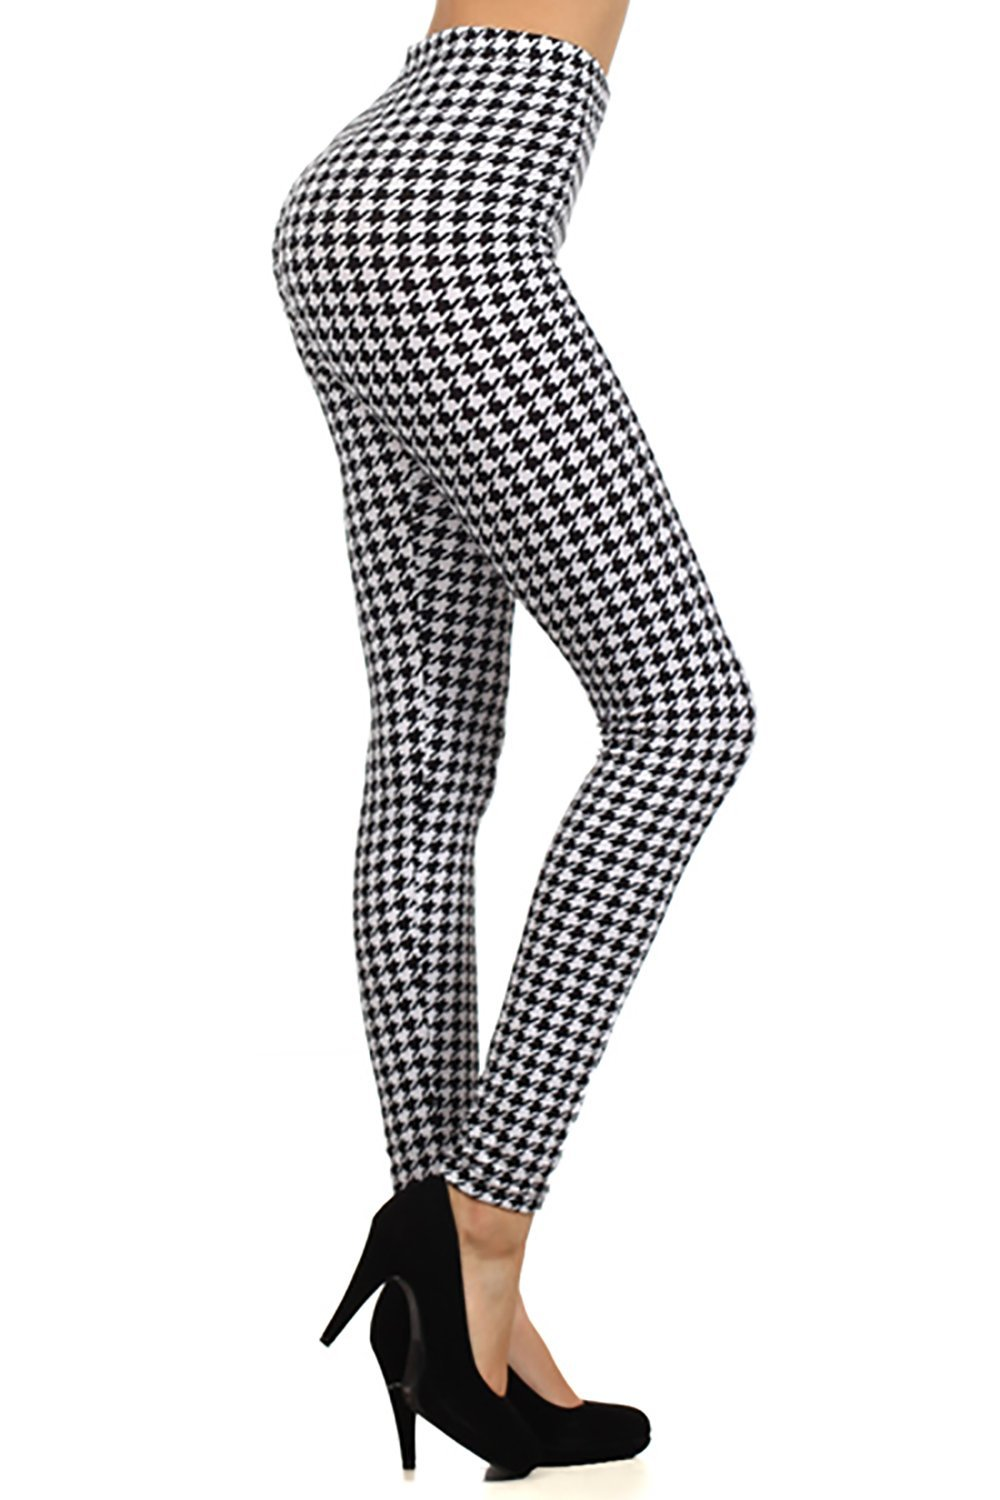 Houndstooth pattern graphic print high waist leggings pants tights (black) at amazon women's clothing store: